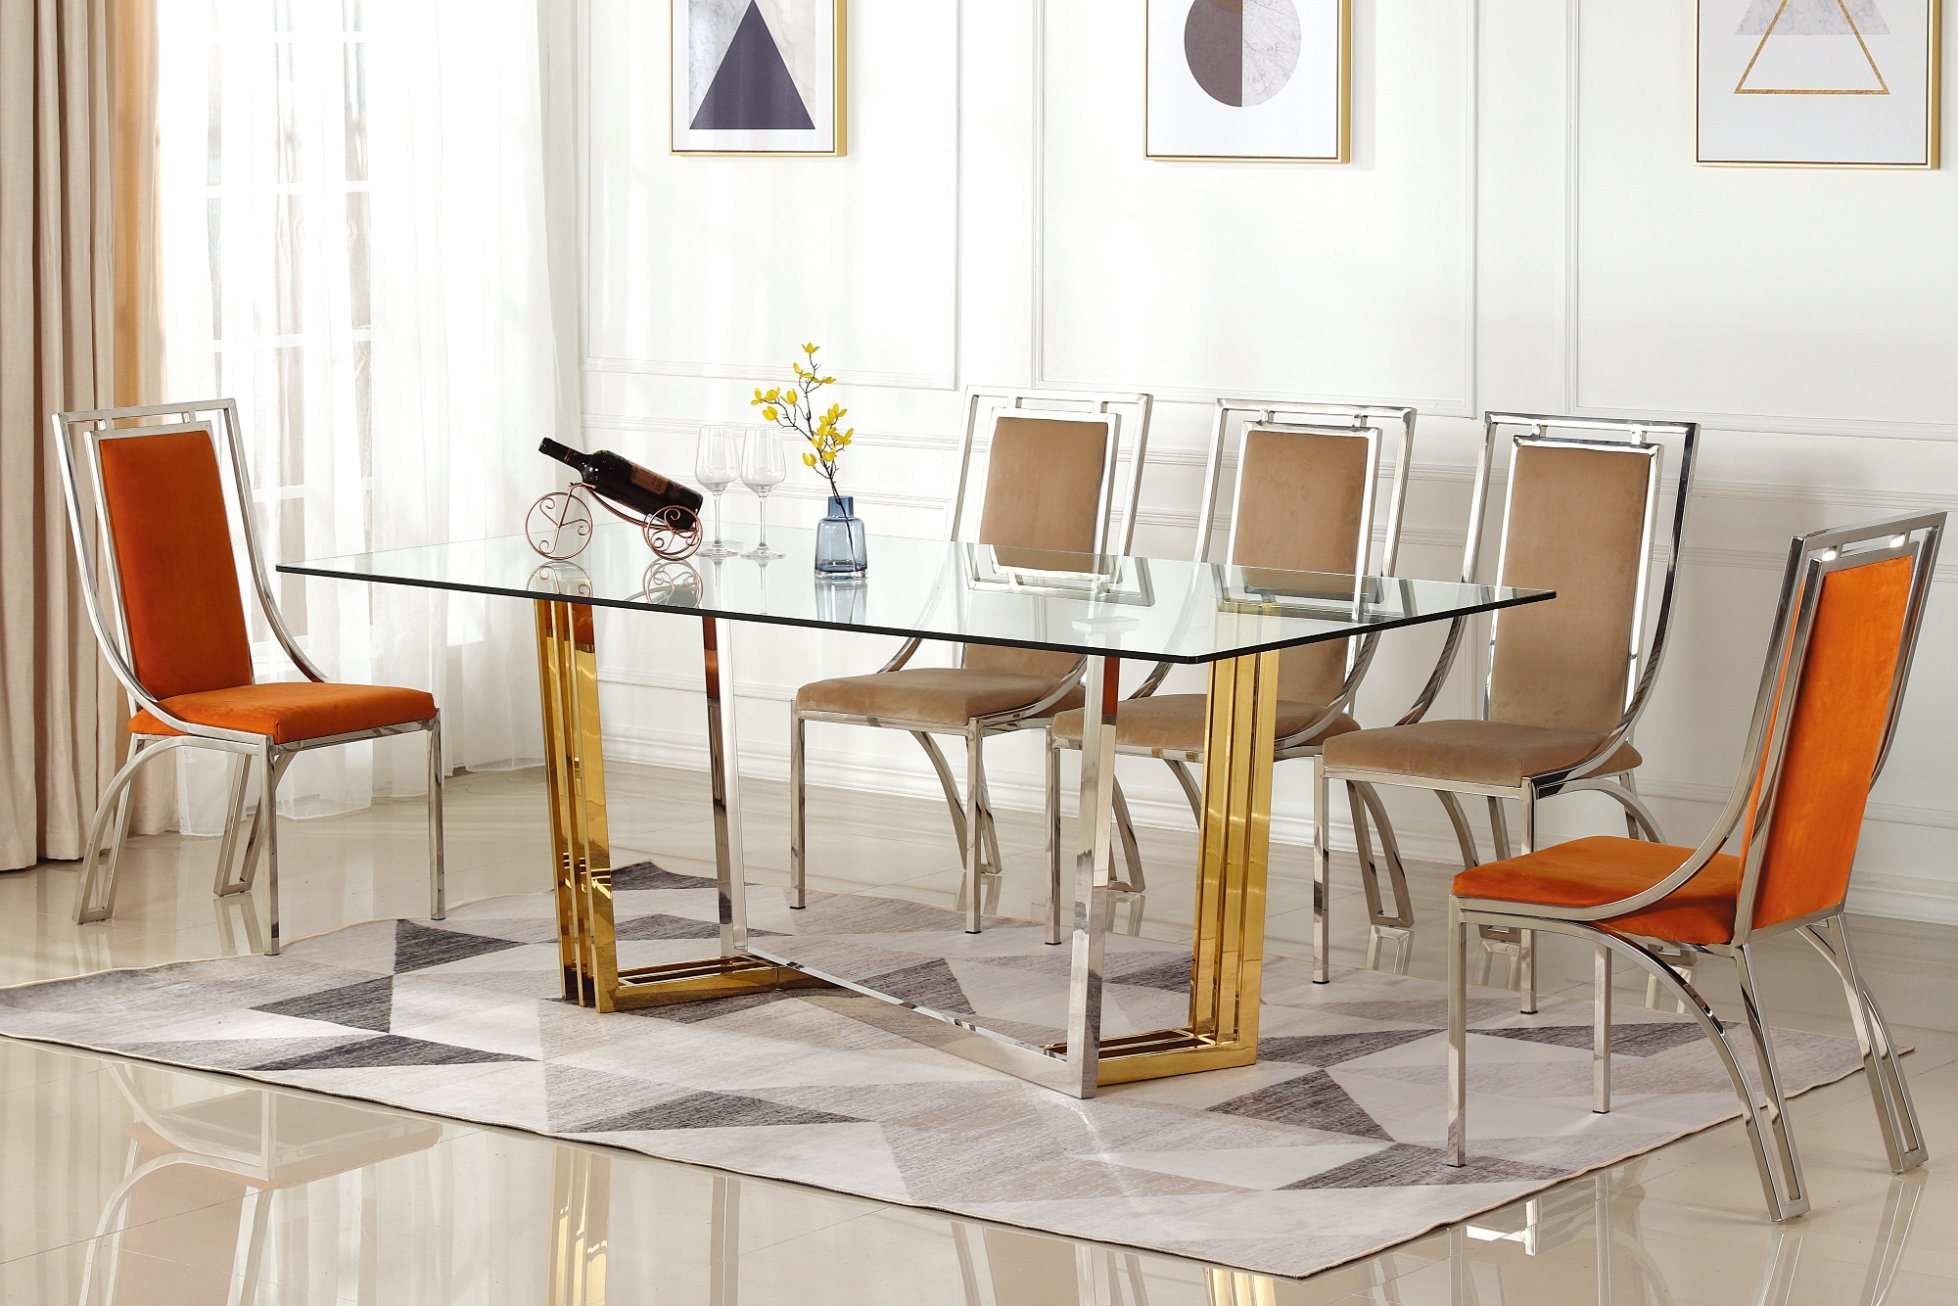 Design Modern Dining Table Set Dining Room Furniture Table And Chairs For Home Restaurant China Dining Table Dining Table Set Made In China Com